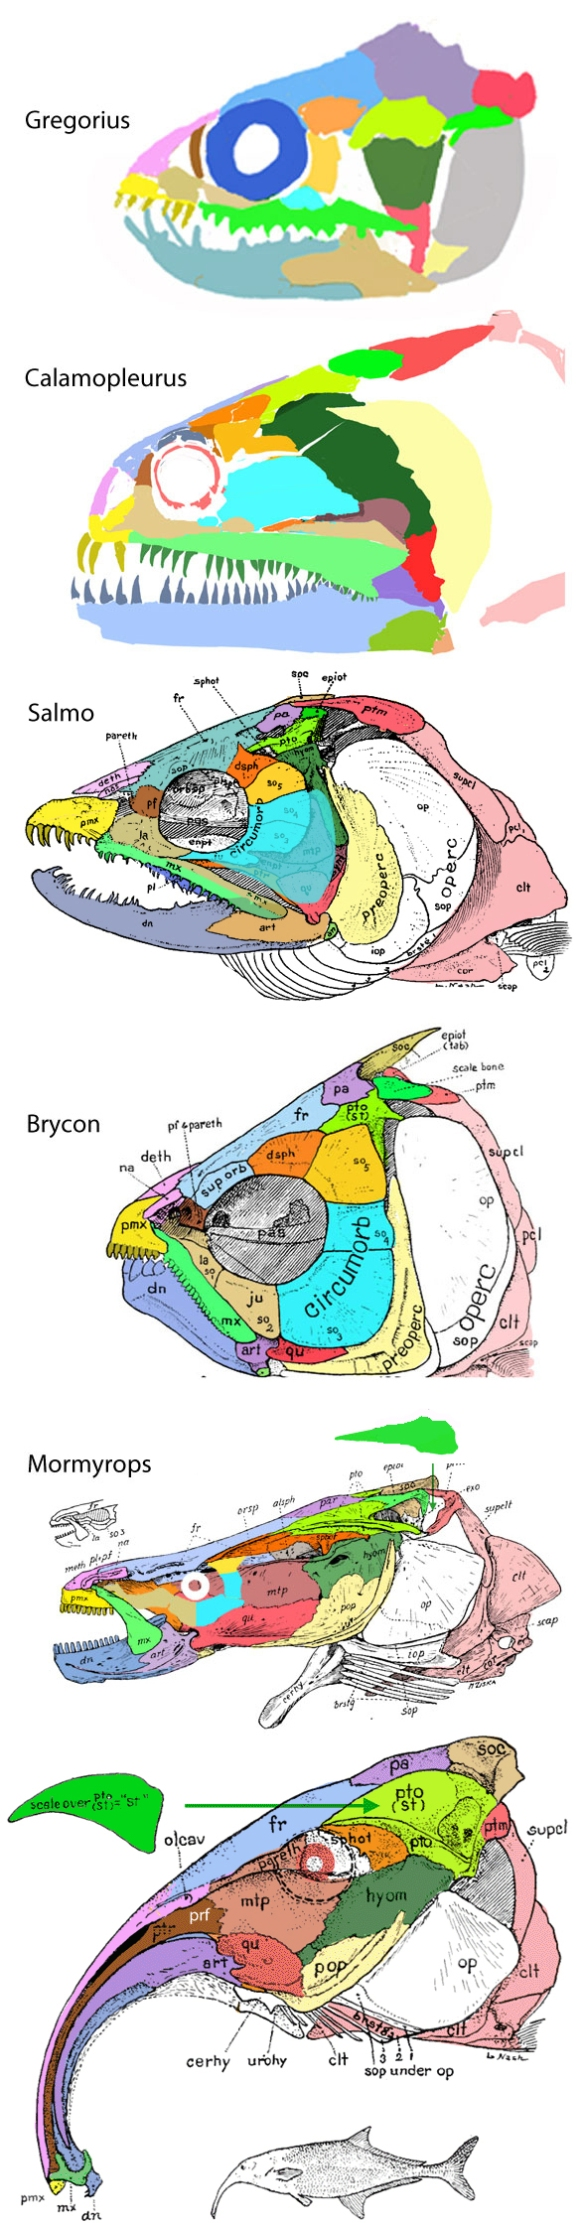 Figure 2. Mormyrid skull evolution as told by sample taxa from their ancestry. Note the layering of the green supratemporal atop the yellow-green intertemporal begins with Brycon.